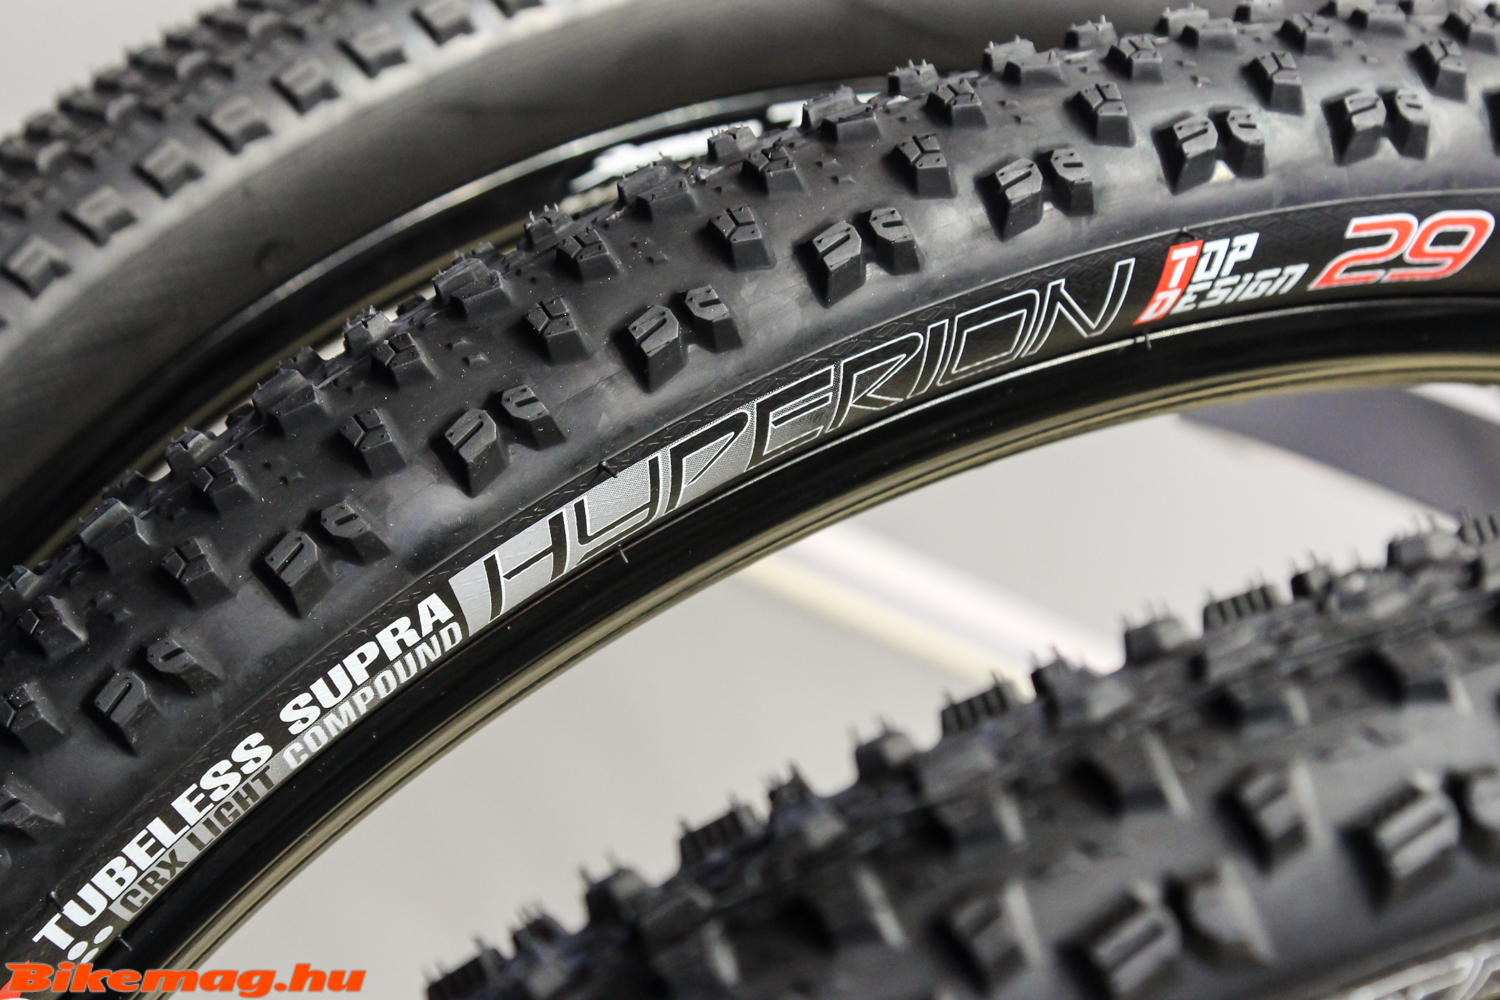 Mitas Hyperion Top Design Tubeless Supra